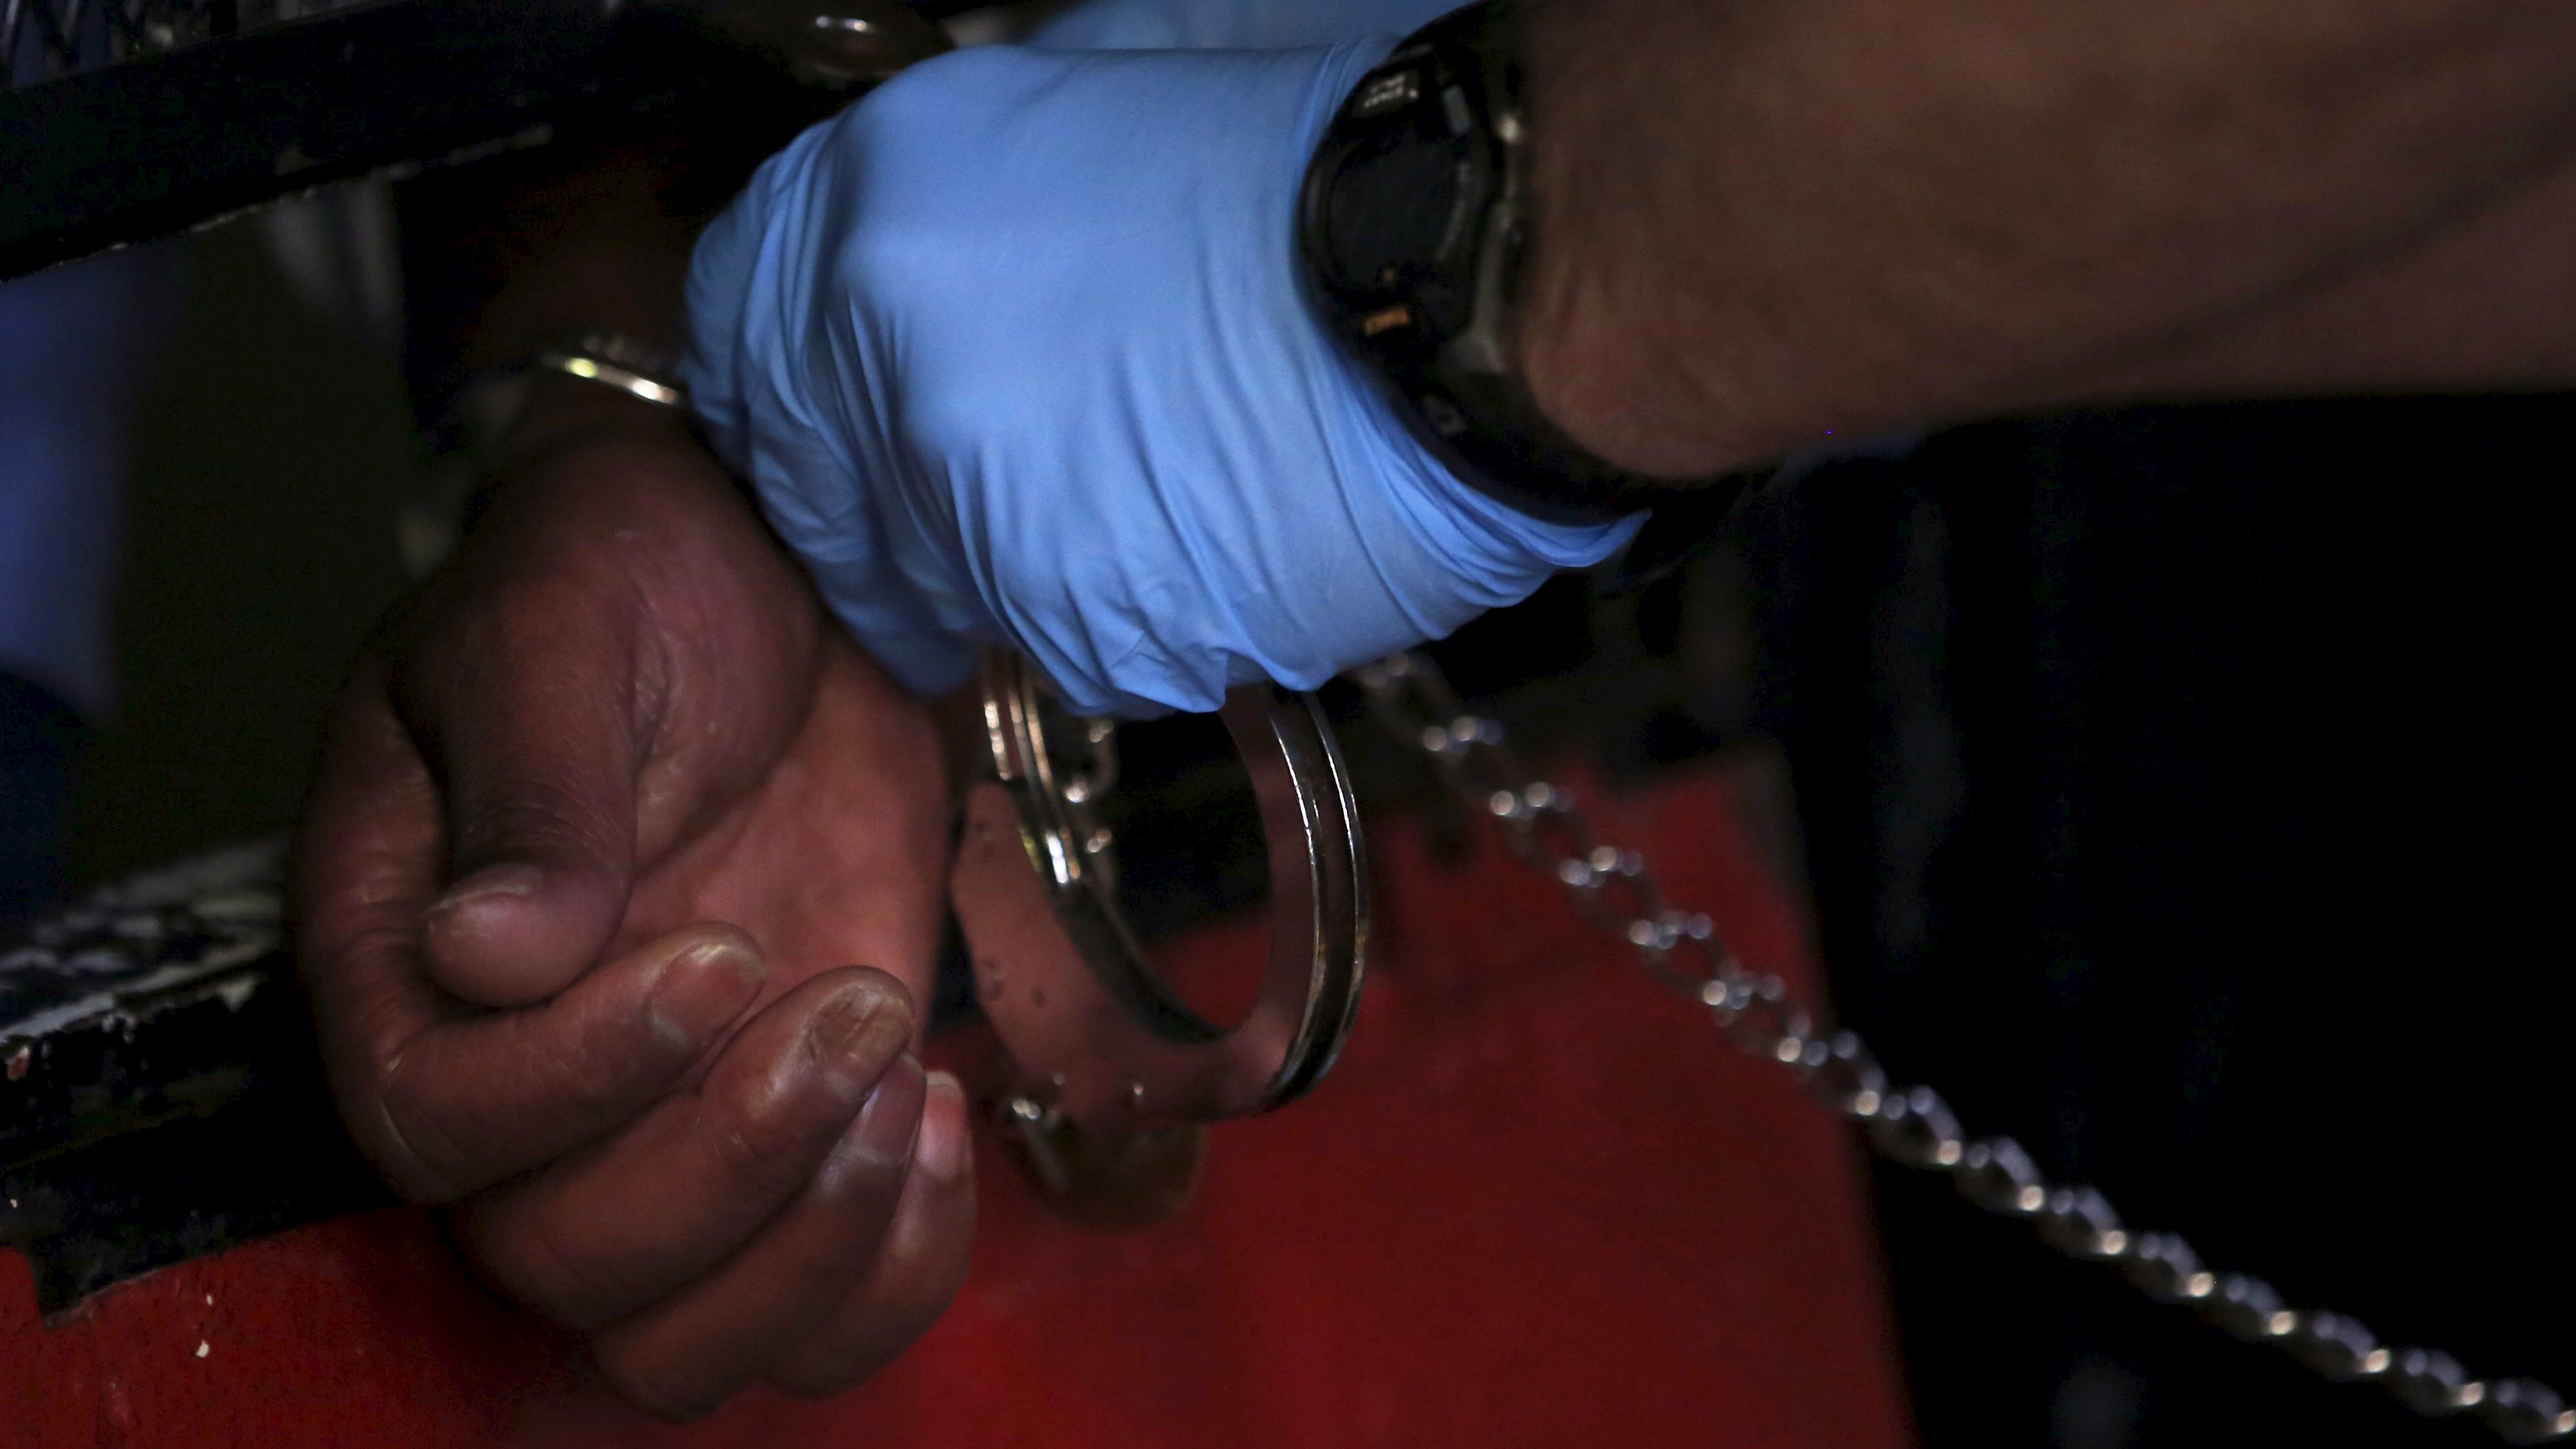 A guard opens the handcuffs of an inmate after he was escorted back into his cell in the East Block during a media tour of California's Death Row at San Quentin State Prison in San Quentin, California December 29, 2015. America's most populous state, which has not carried out an execution in a decade, begins 2016 at a pivotal juncture, as legal developments hasten the march toward resuming executions, while opponents seek to end the death penalty at the ballot box. To match Feature CALIFORNIA-DEATH-PENALTY/    Picture taken December 29, 2015. REUTERS/Stephen Lam - RTX21ECW